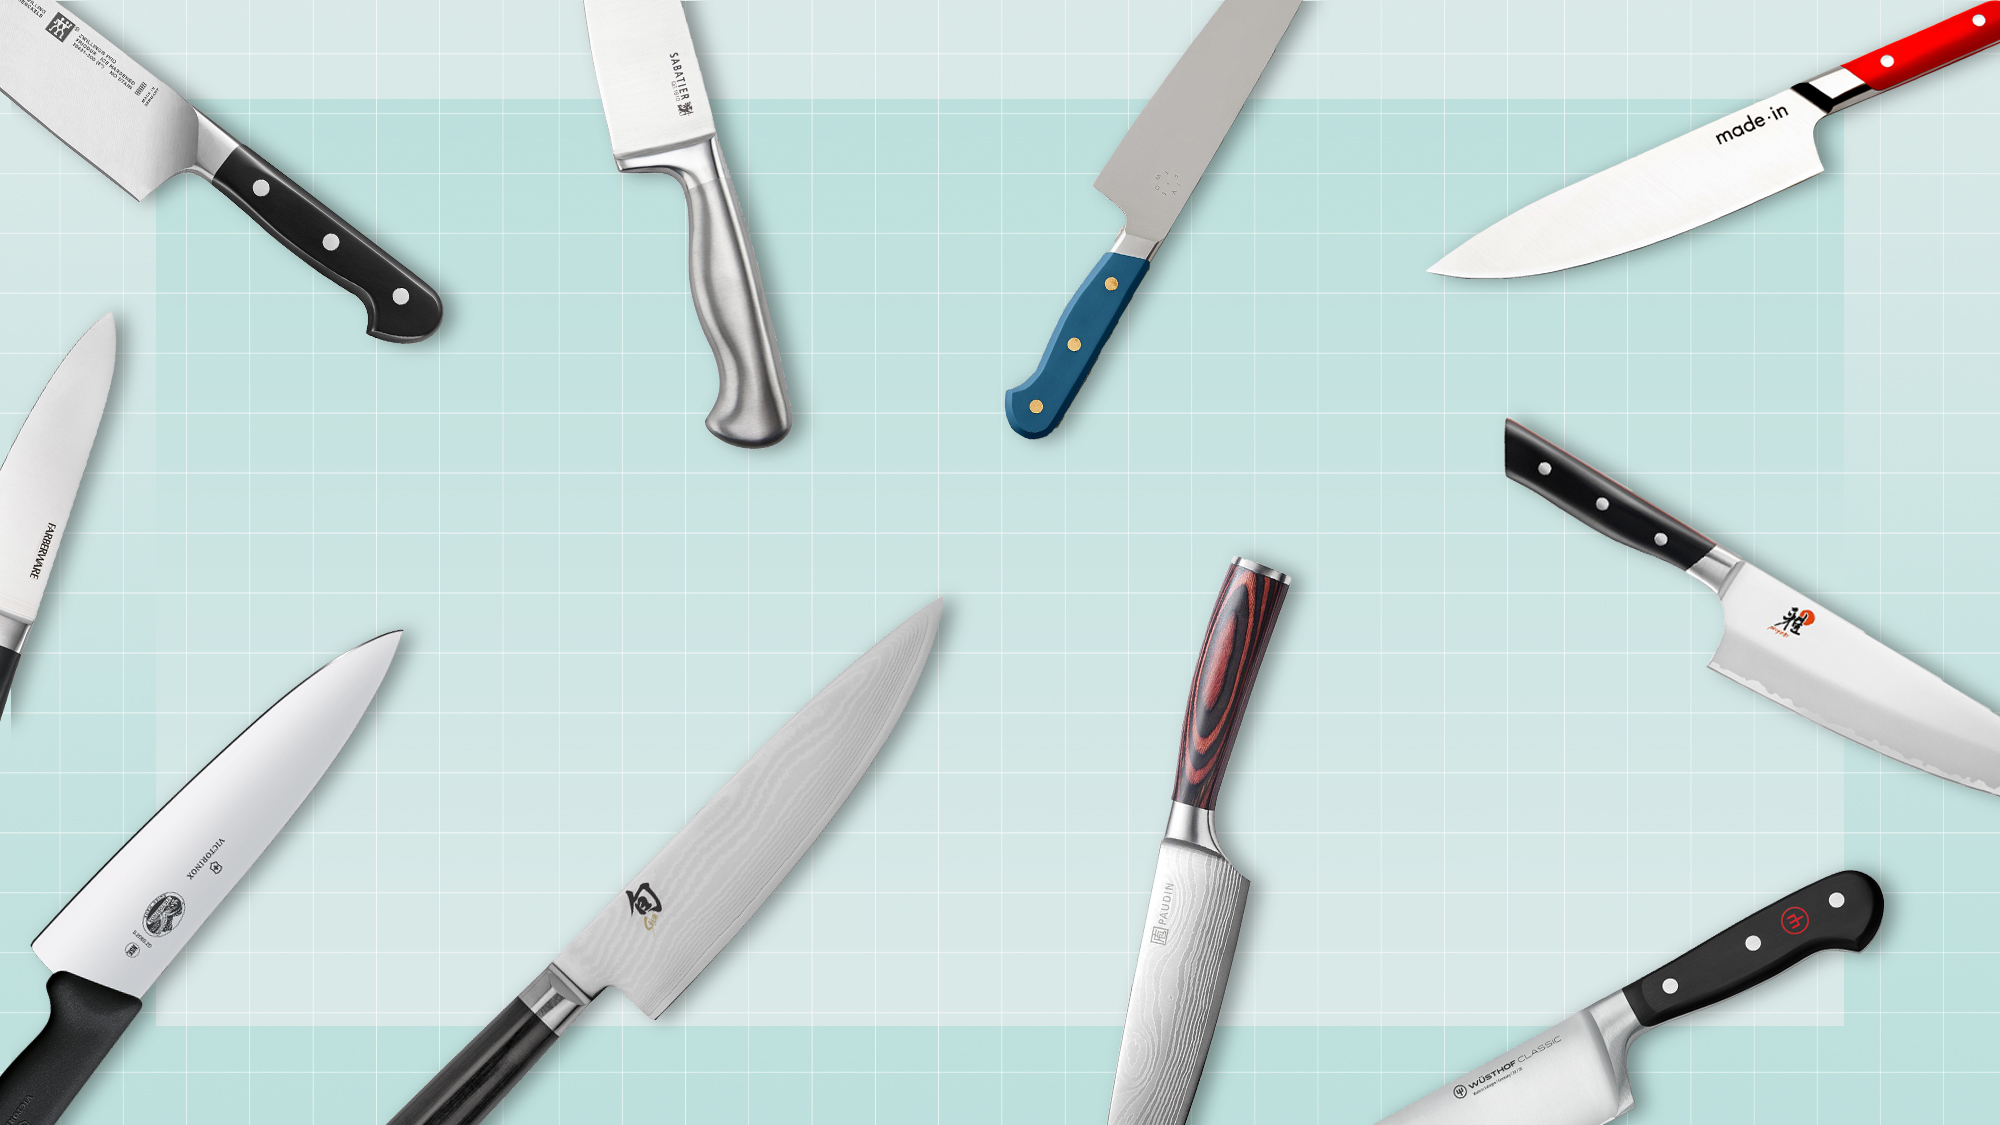 A selection of chef's knives floating on a designed background